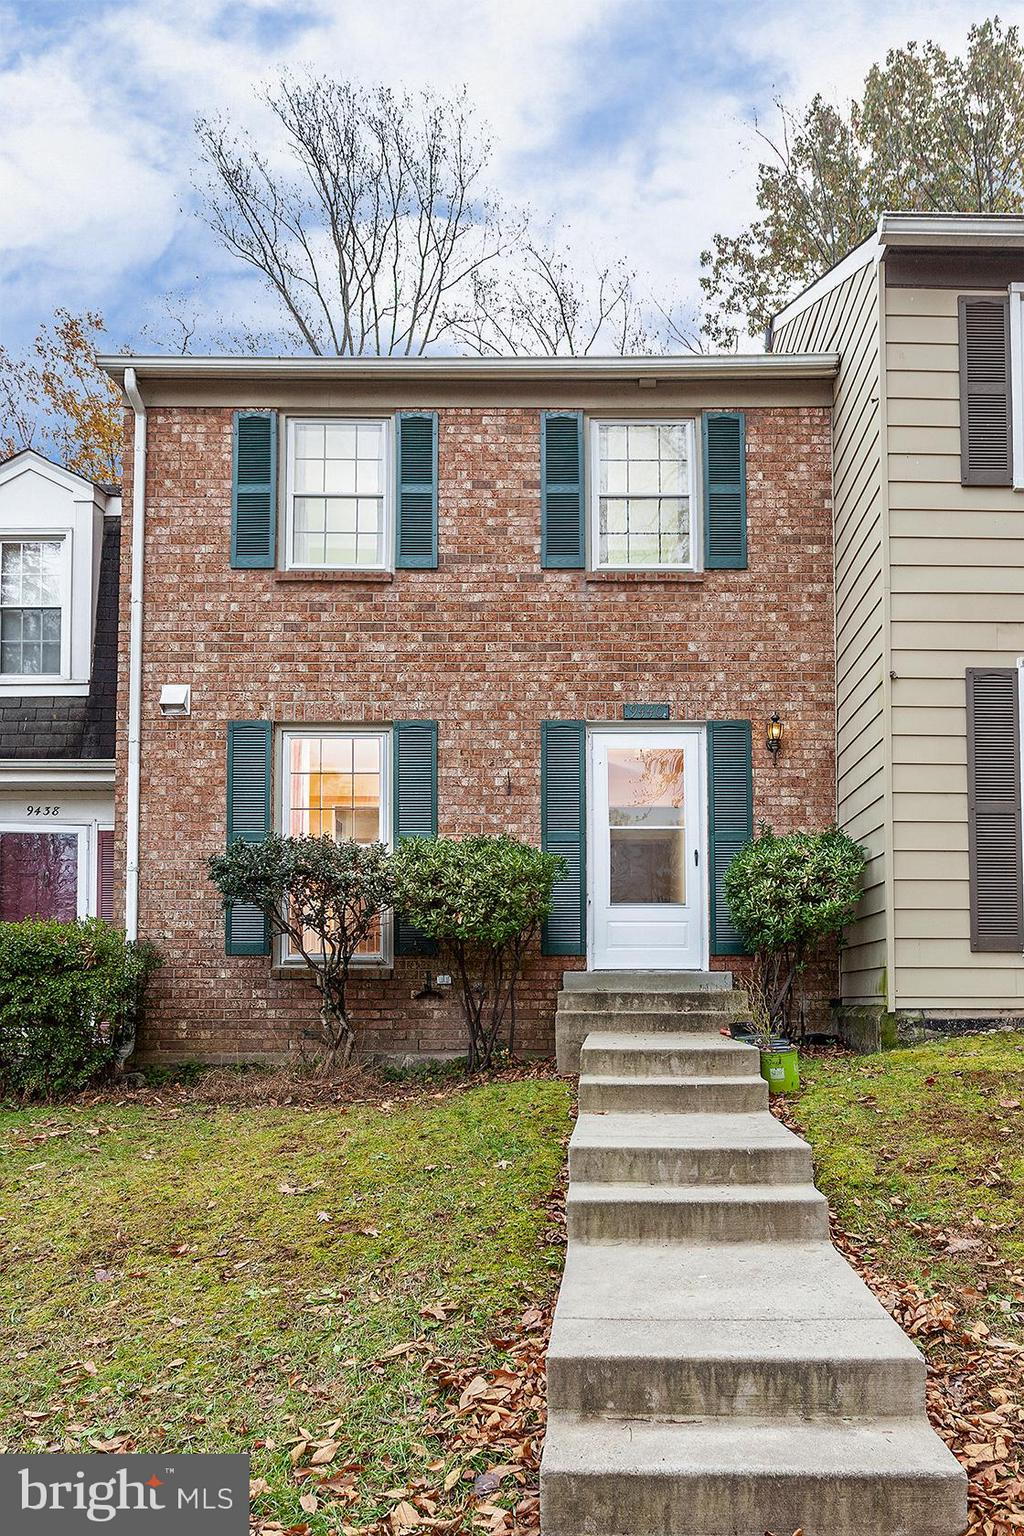 GOOD LOCATION !! BRICK FRONT TOWNHOUSE W/3 LEVELS, 3 BEDROOMS, 3.5 BATHS. NEW ROOF, FRESHLYPAINTED,WASHER/DRYER(2017),DISWASHER ,MICROWARE, KITCHEN  UPDATED W/NEW CARBINET(2018) WITH W/SS APPLIANCES, MASTER BATH(2018),POWER ROOM (2018).WALK TO SHOP, FINISHED LOWER LEVEL W/ FULL BATH & UTILITY RM, FAMILY ROOM WALK OUT TO FENCED BACK YARD.